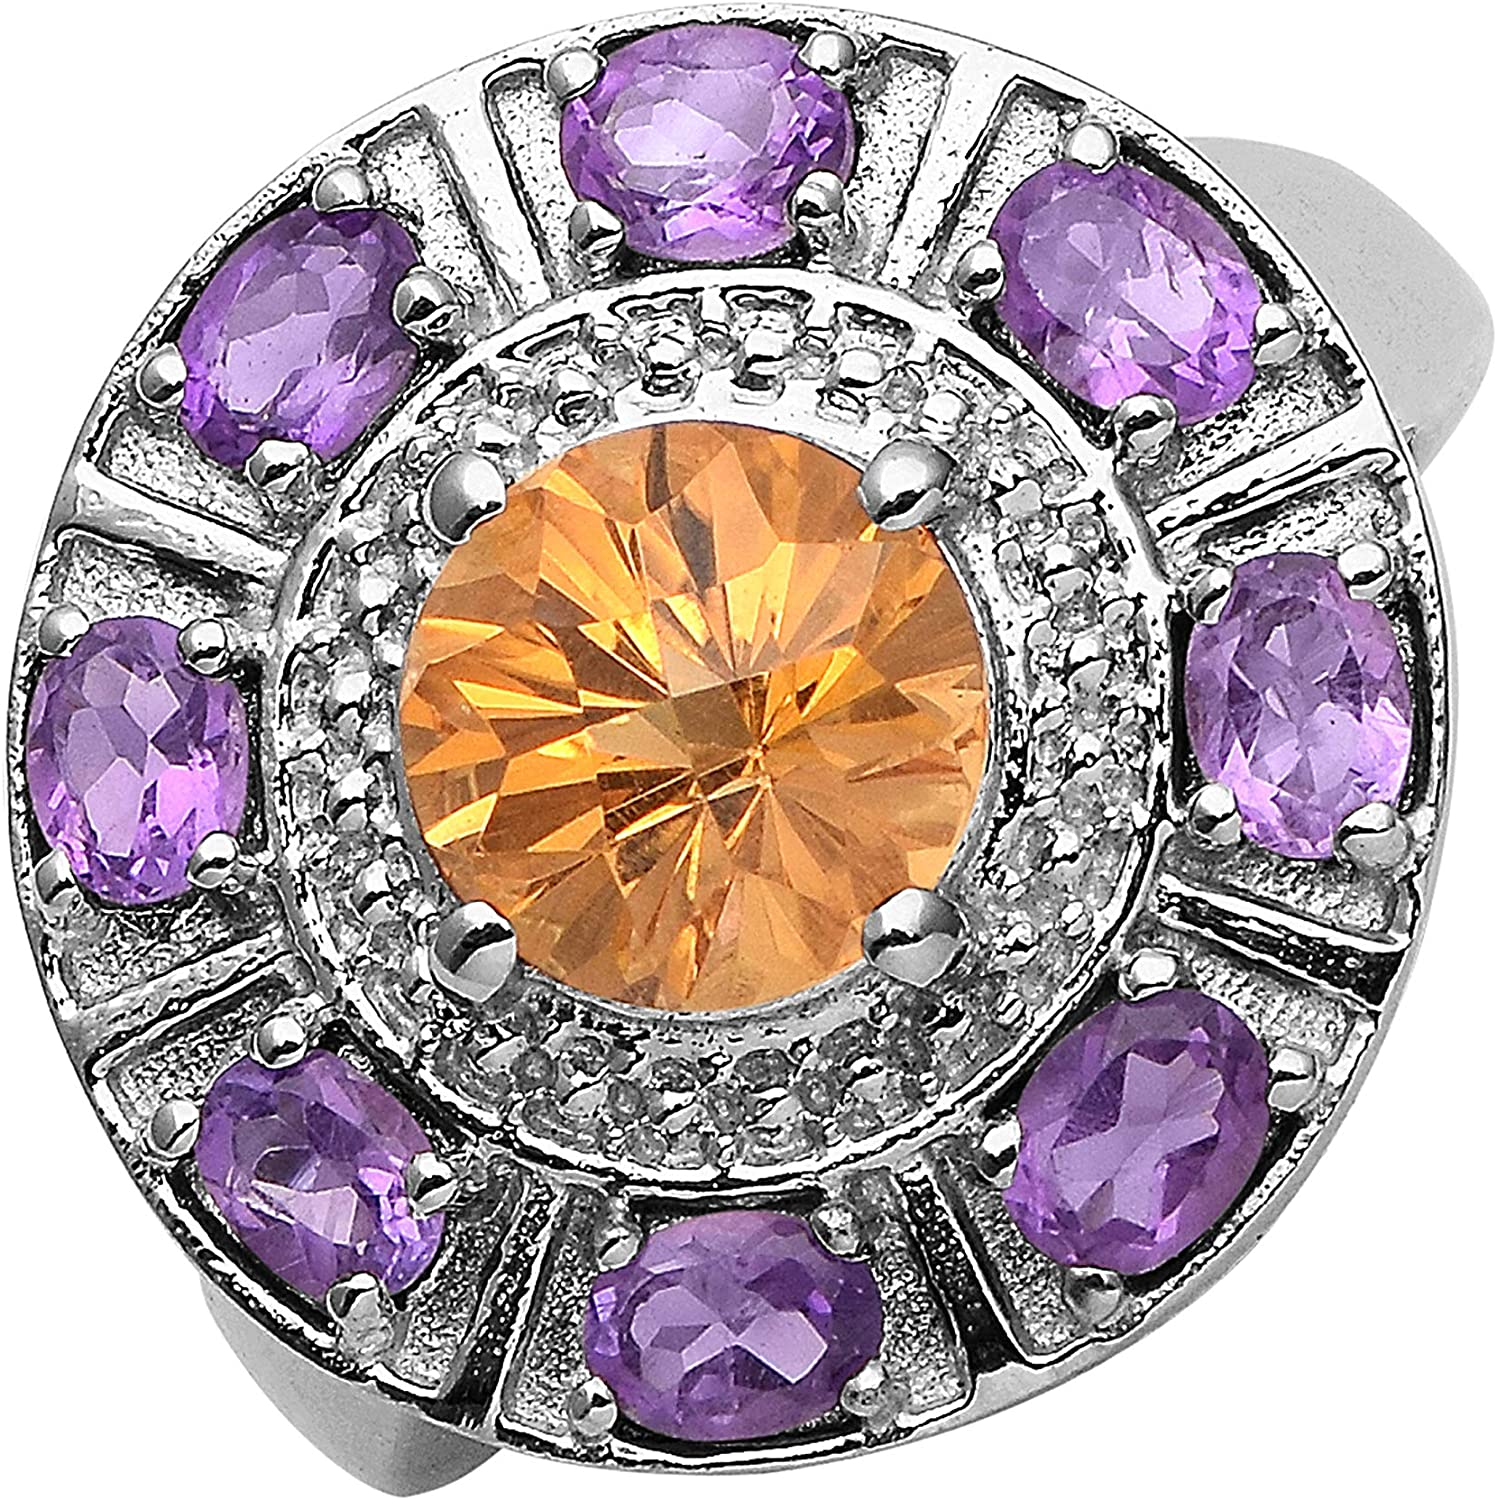 Shine Jewel Madeira Citrine with Amethyst Gemstone 925 Sterling Silver Circle Cluster Statement Ring